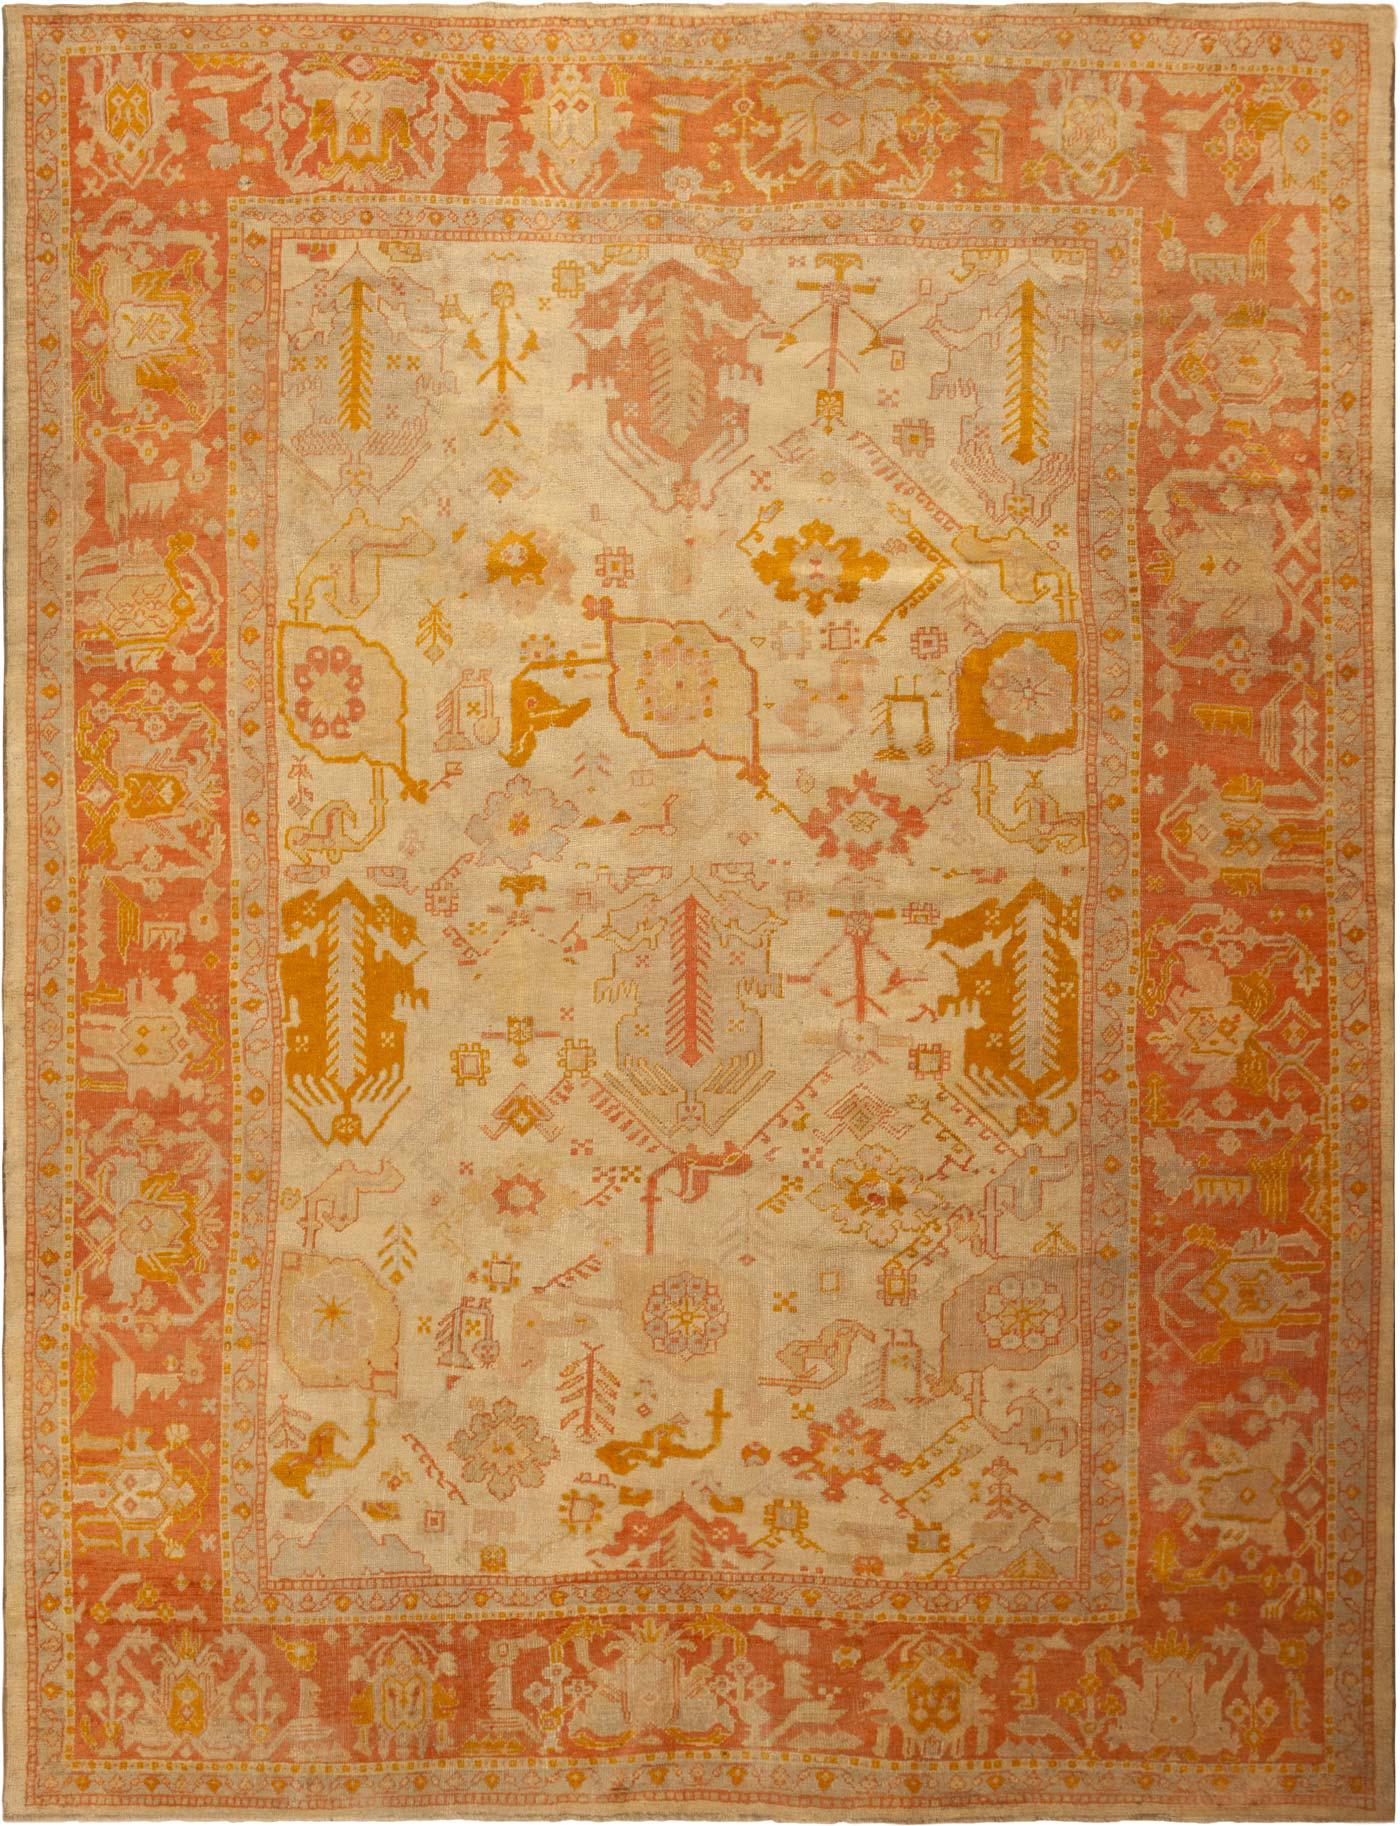 Captivating oushak rugs for floorings and rugs ideas with antique oushak rugs